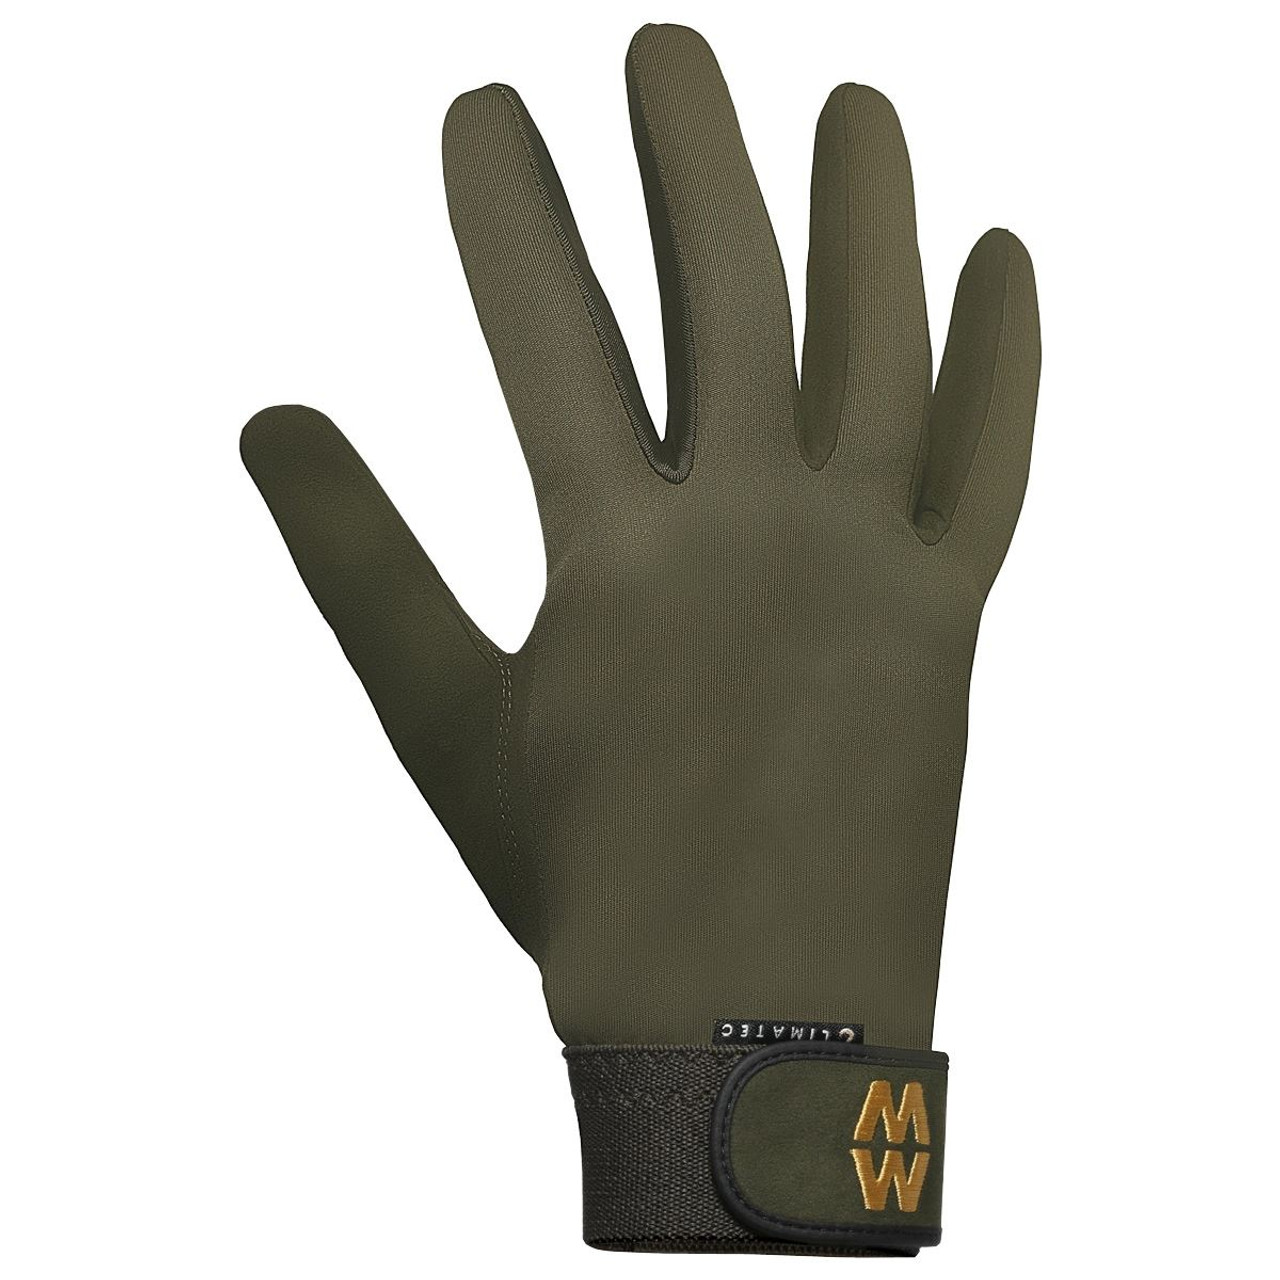 MacWet Climatec Long Cuff Sports Gloves